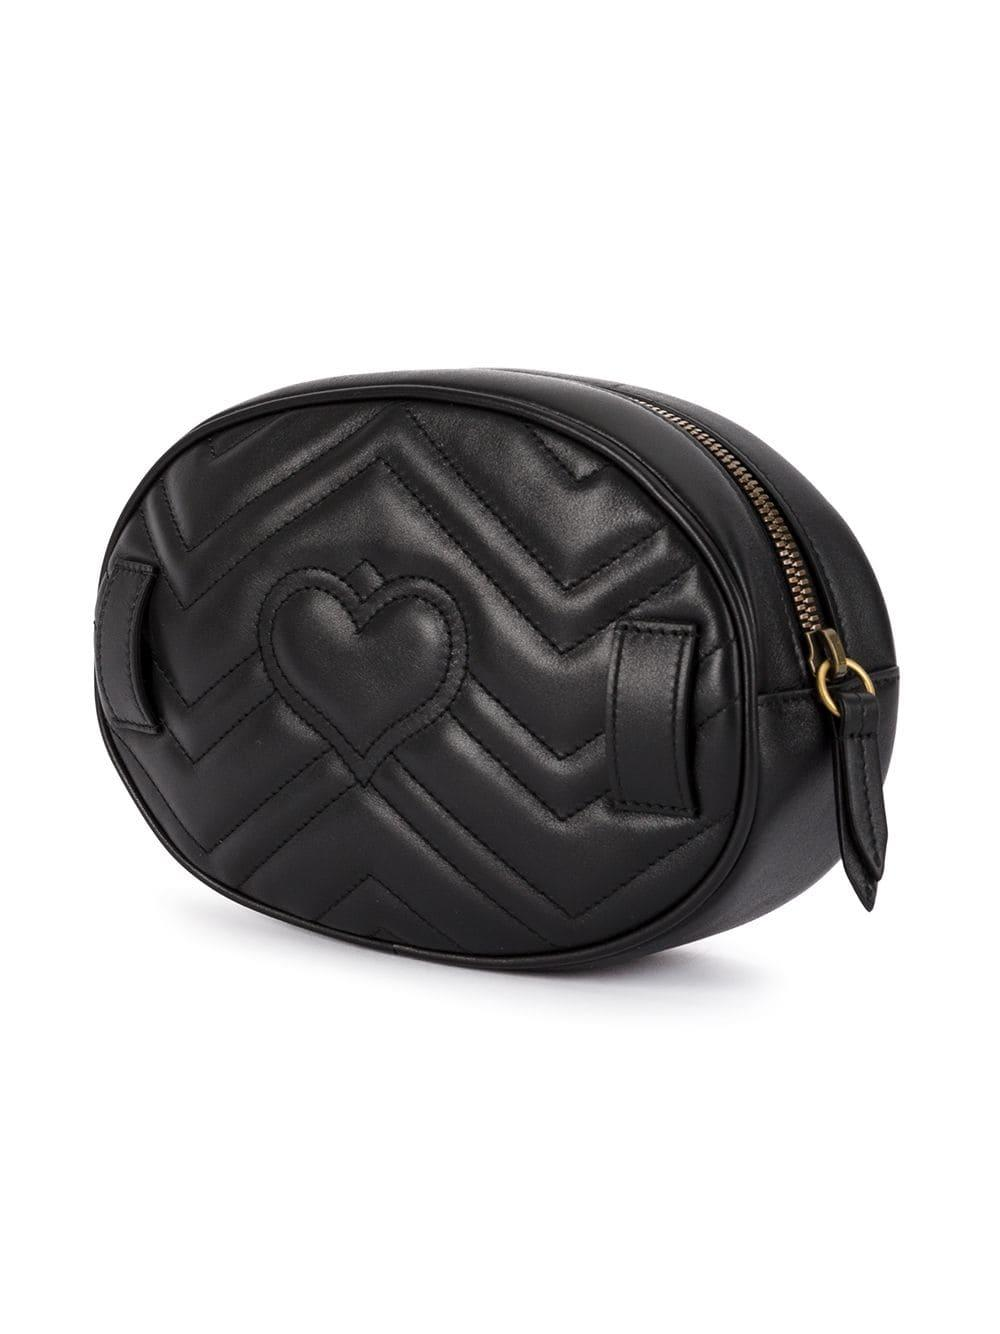 edea45d6c918 Gucci - Black GG Marmont Quilted Belt Bag - Lyst. View fullscreen